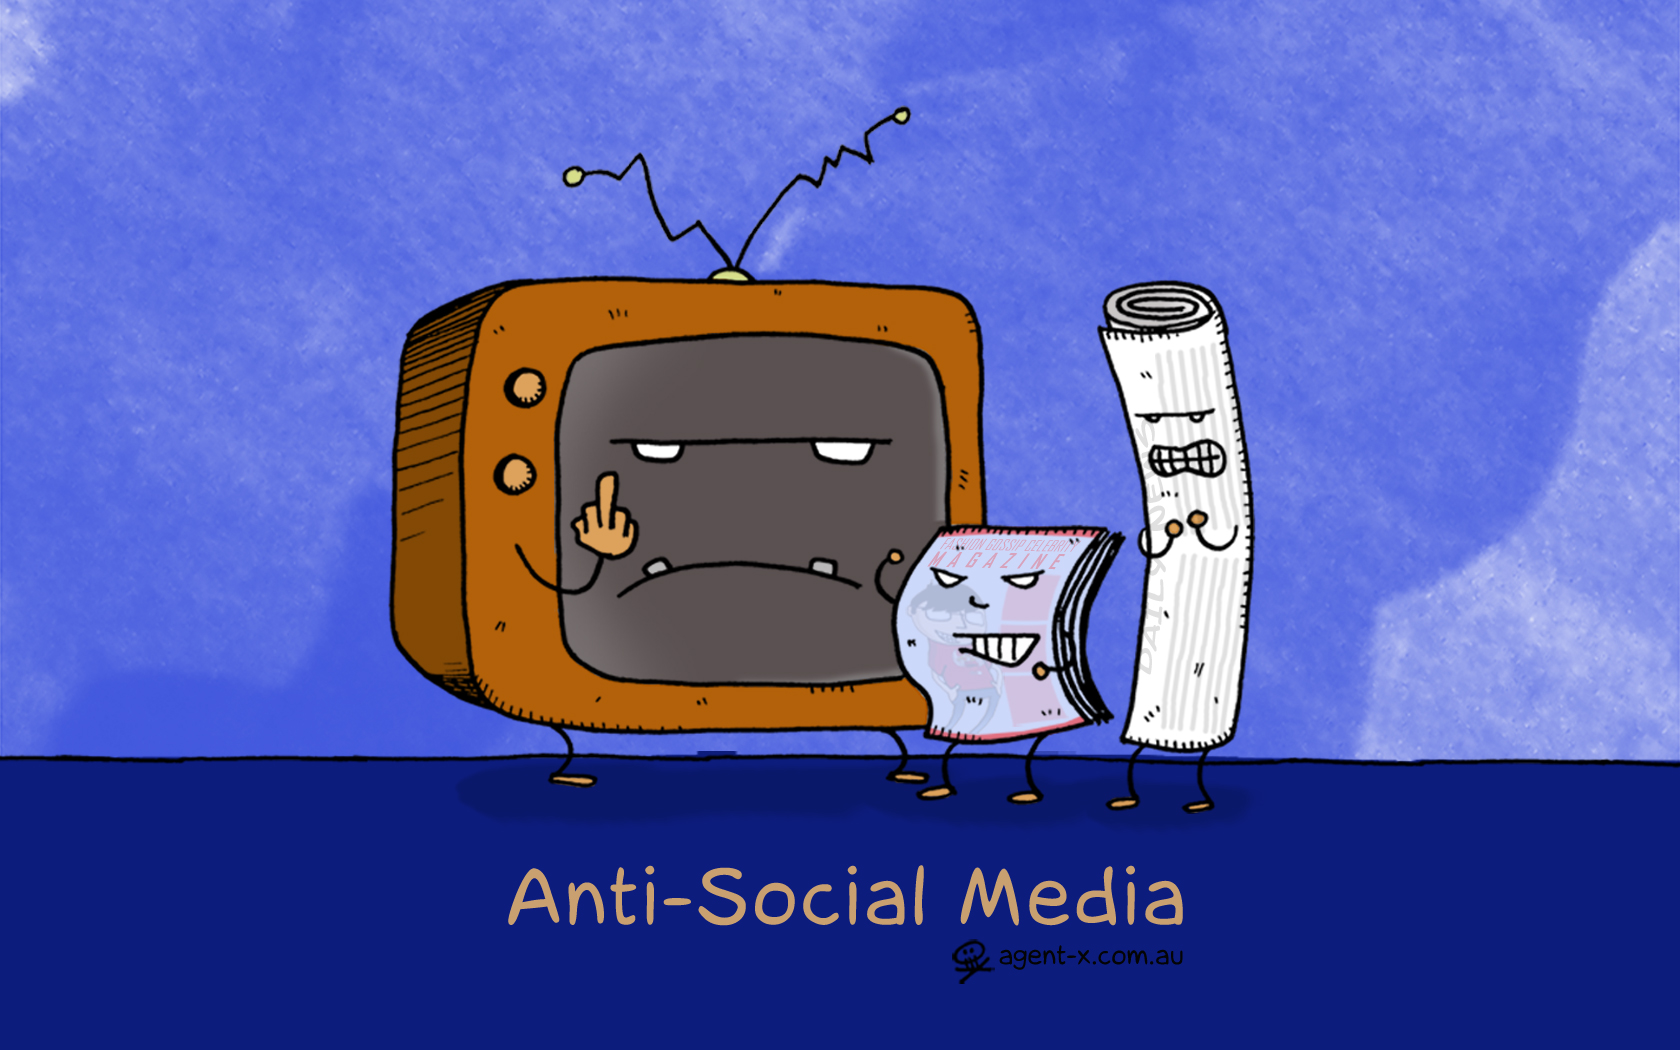 anti_social-media_desktop_1680.jpg